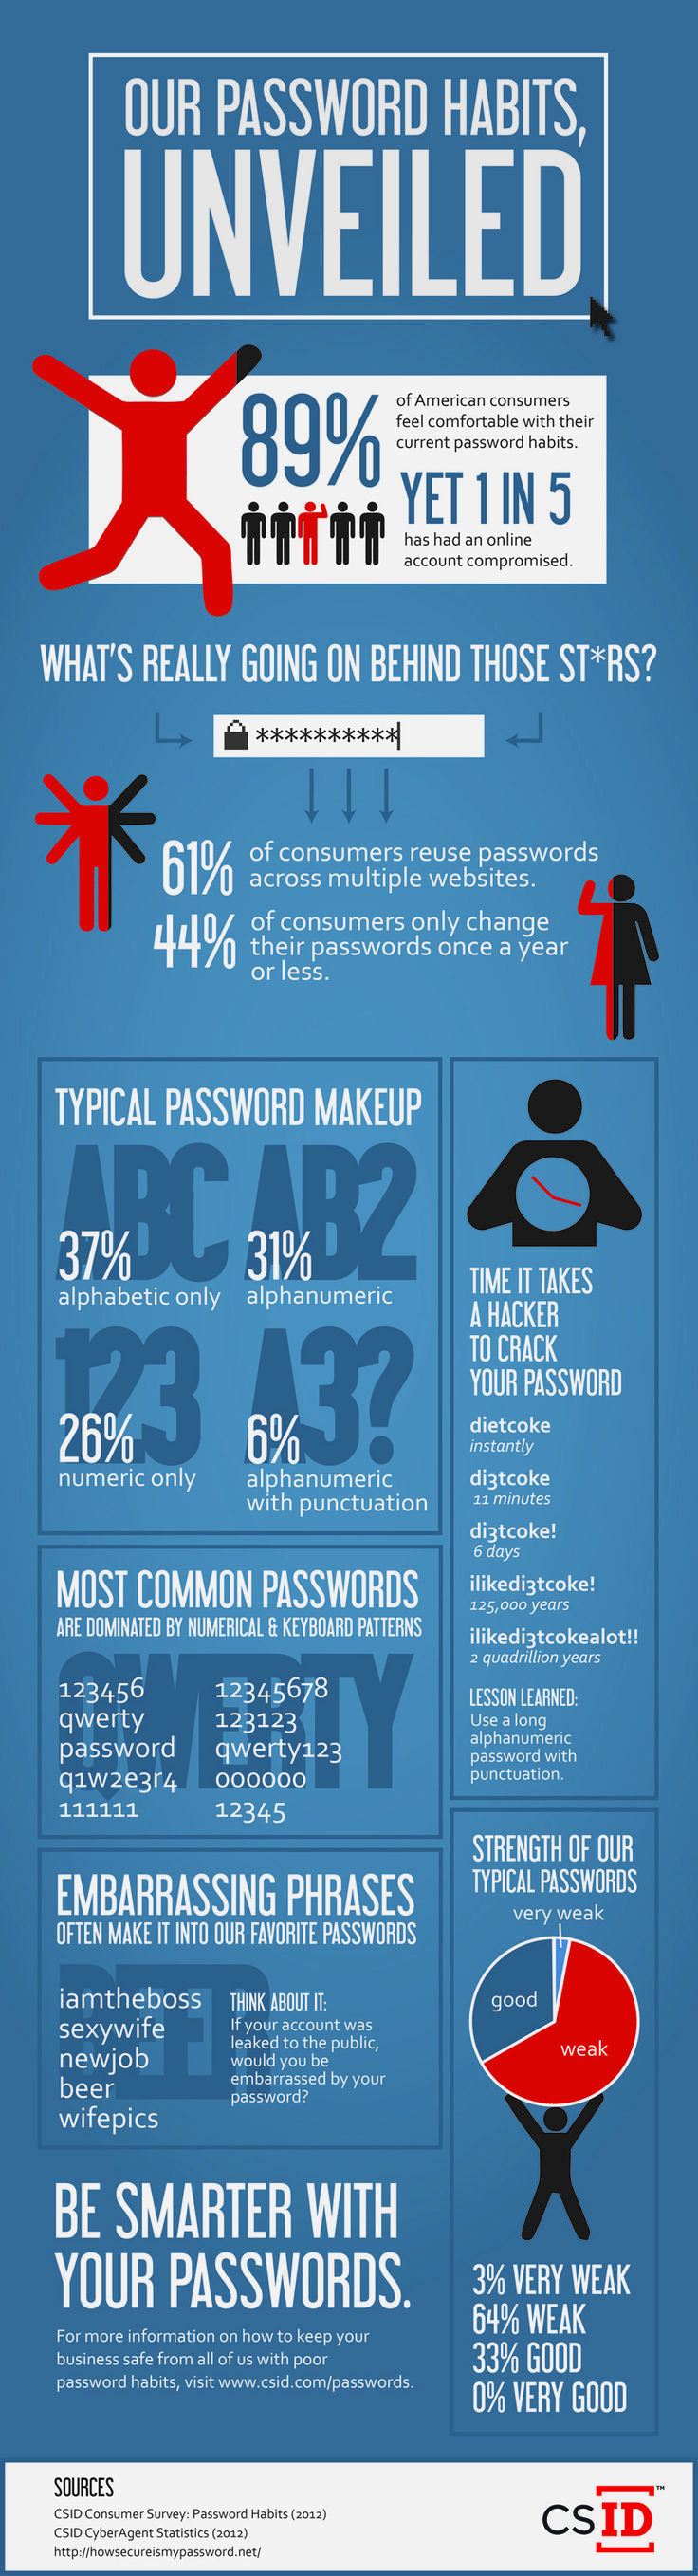 We conducted a consumer survey about password habits and found that, unsurprisingly, consumers aren't too secure when it comes to passwords. This grap